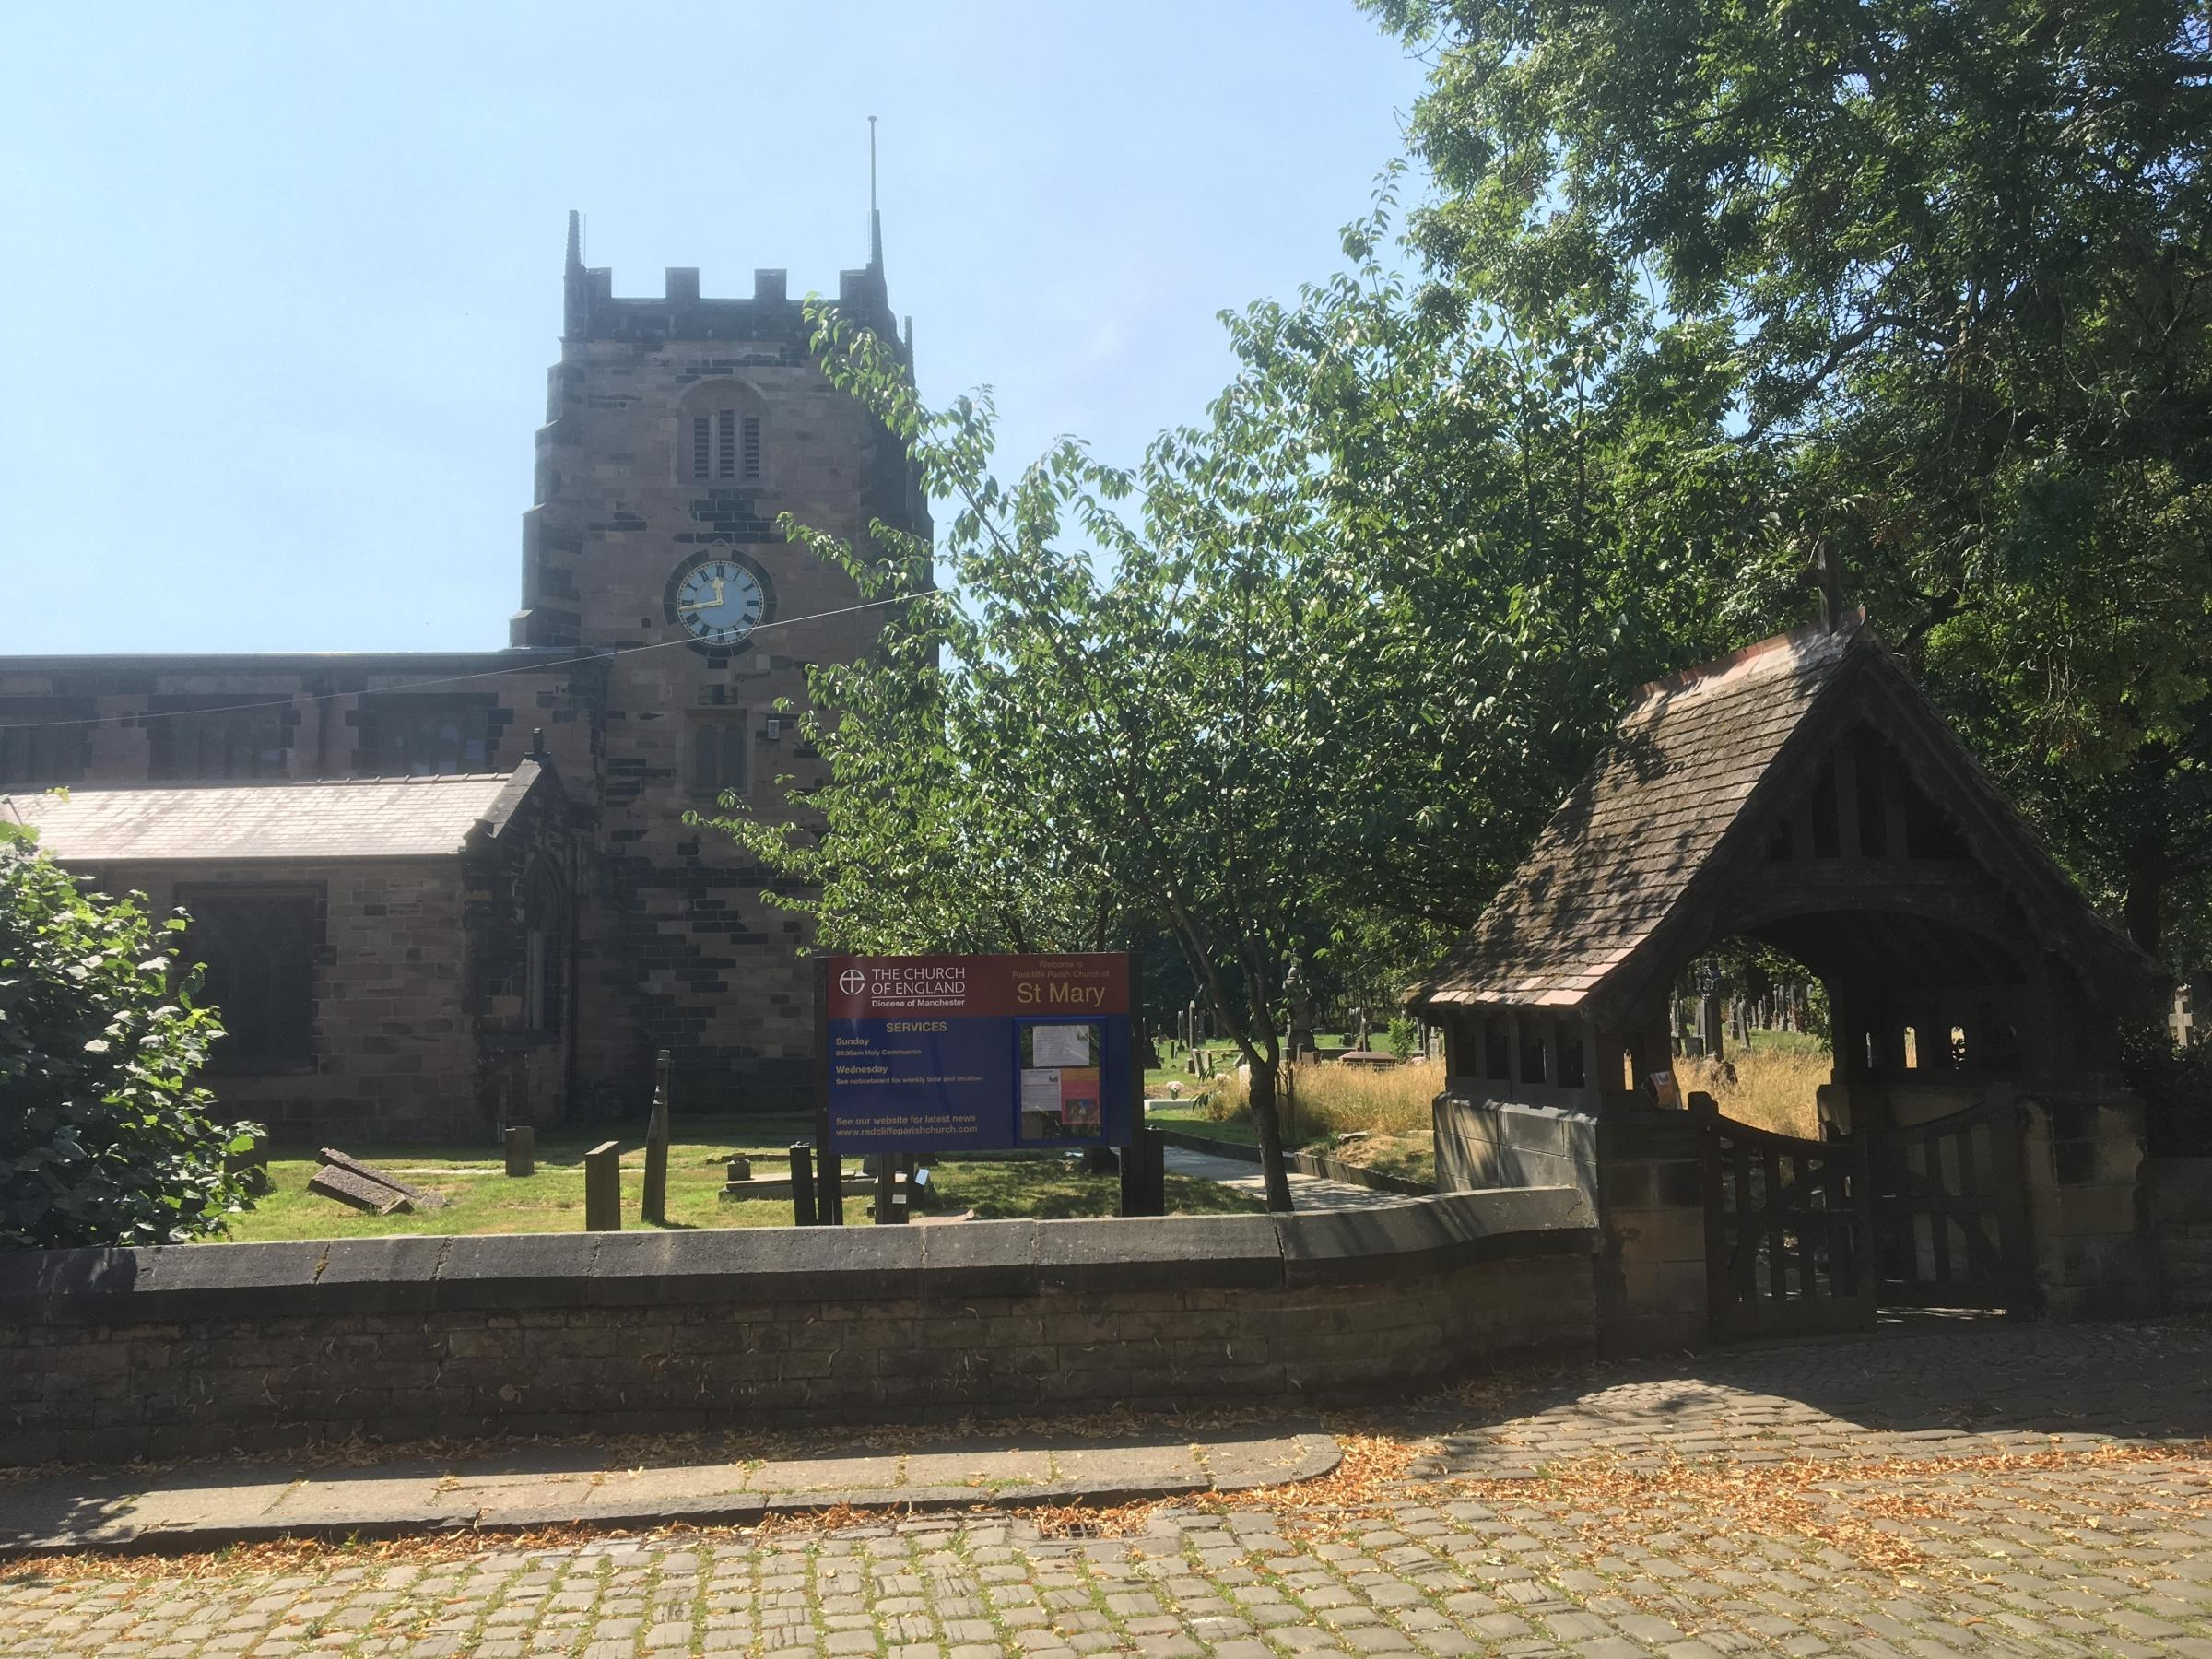 INVITATION: Radcliffe Parish Church will hold a pet service